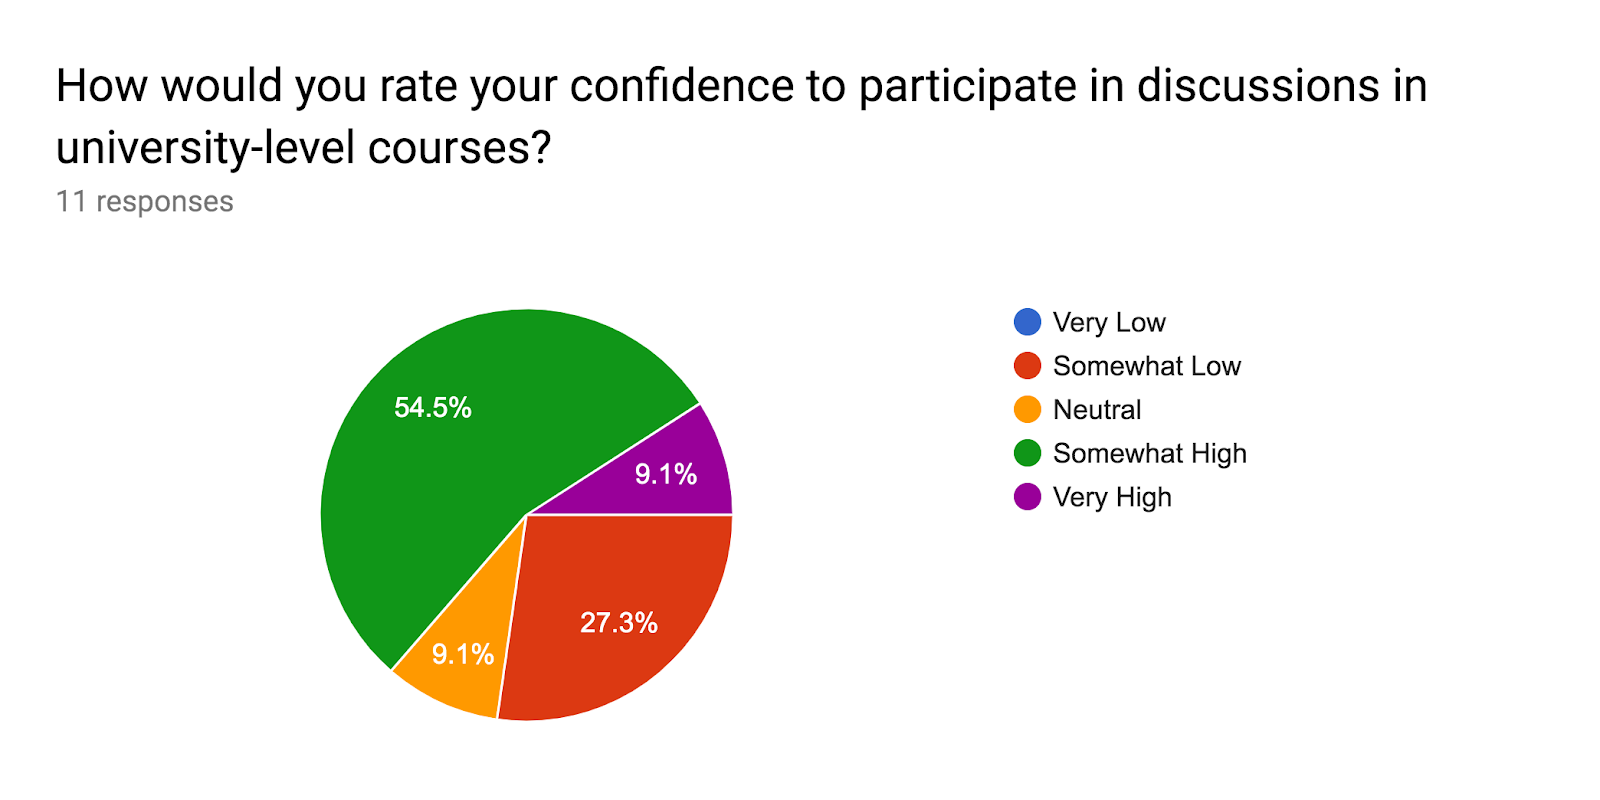 Forms response chart. Question title: How would you rate your confidence to participate in discussions in university-level courses?. Number of responses: 11 responses.